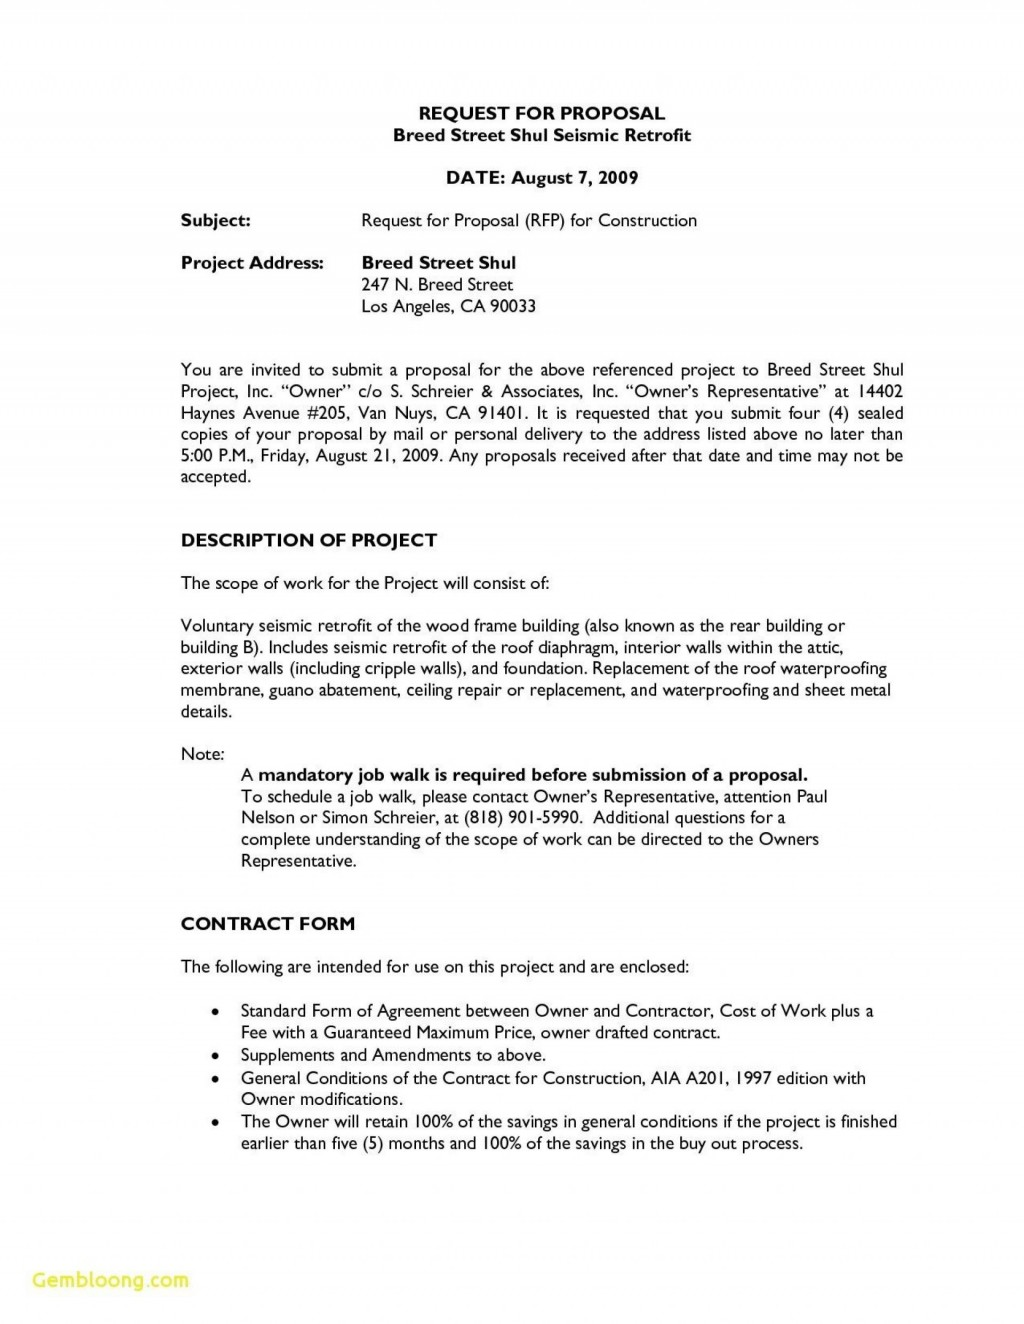 007 Rare Request For Proposal Response Word Template Concept Large